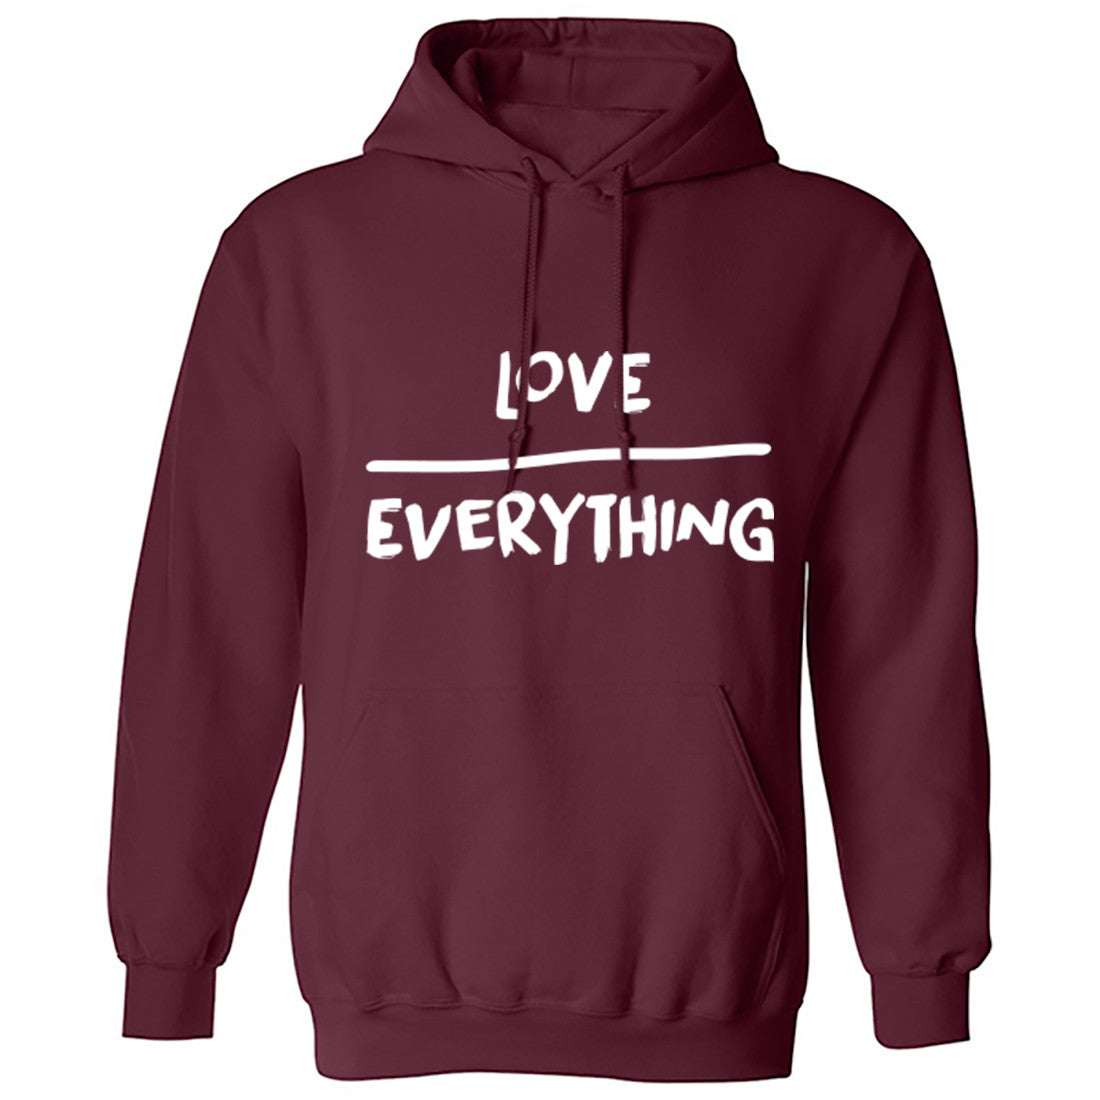 Love Over Everything Unisex Hoodie K0127 - Illustrated Identity Ltd.